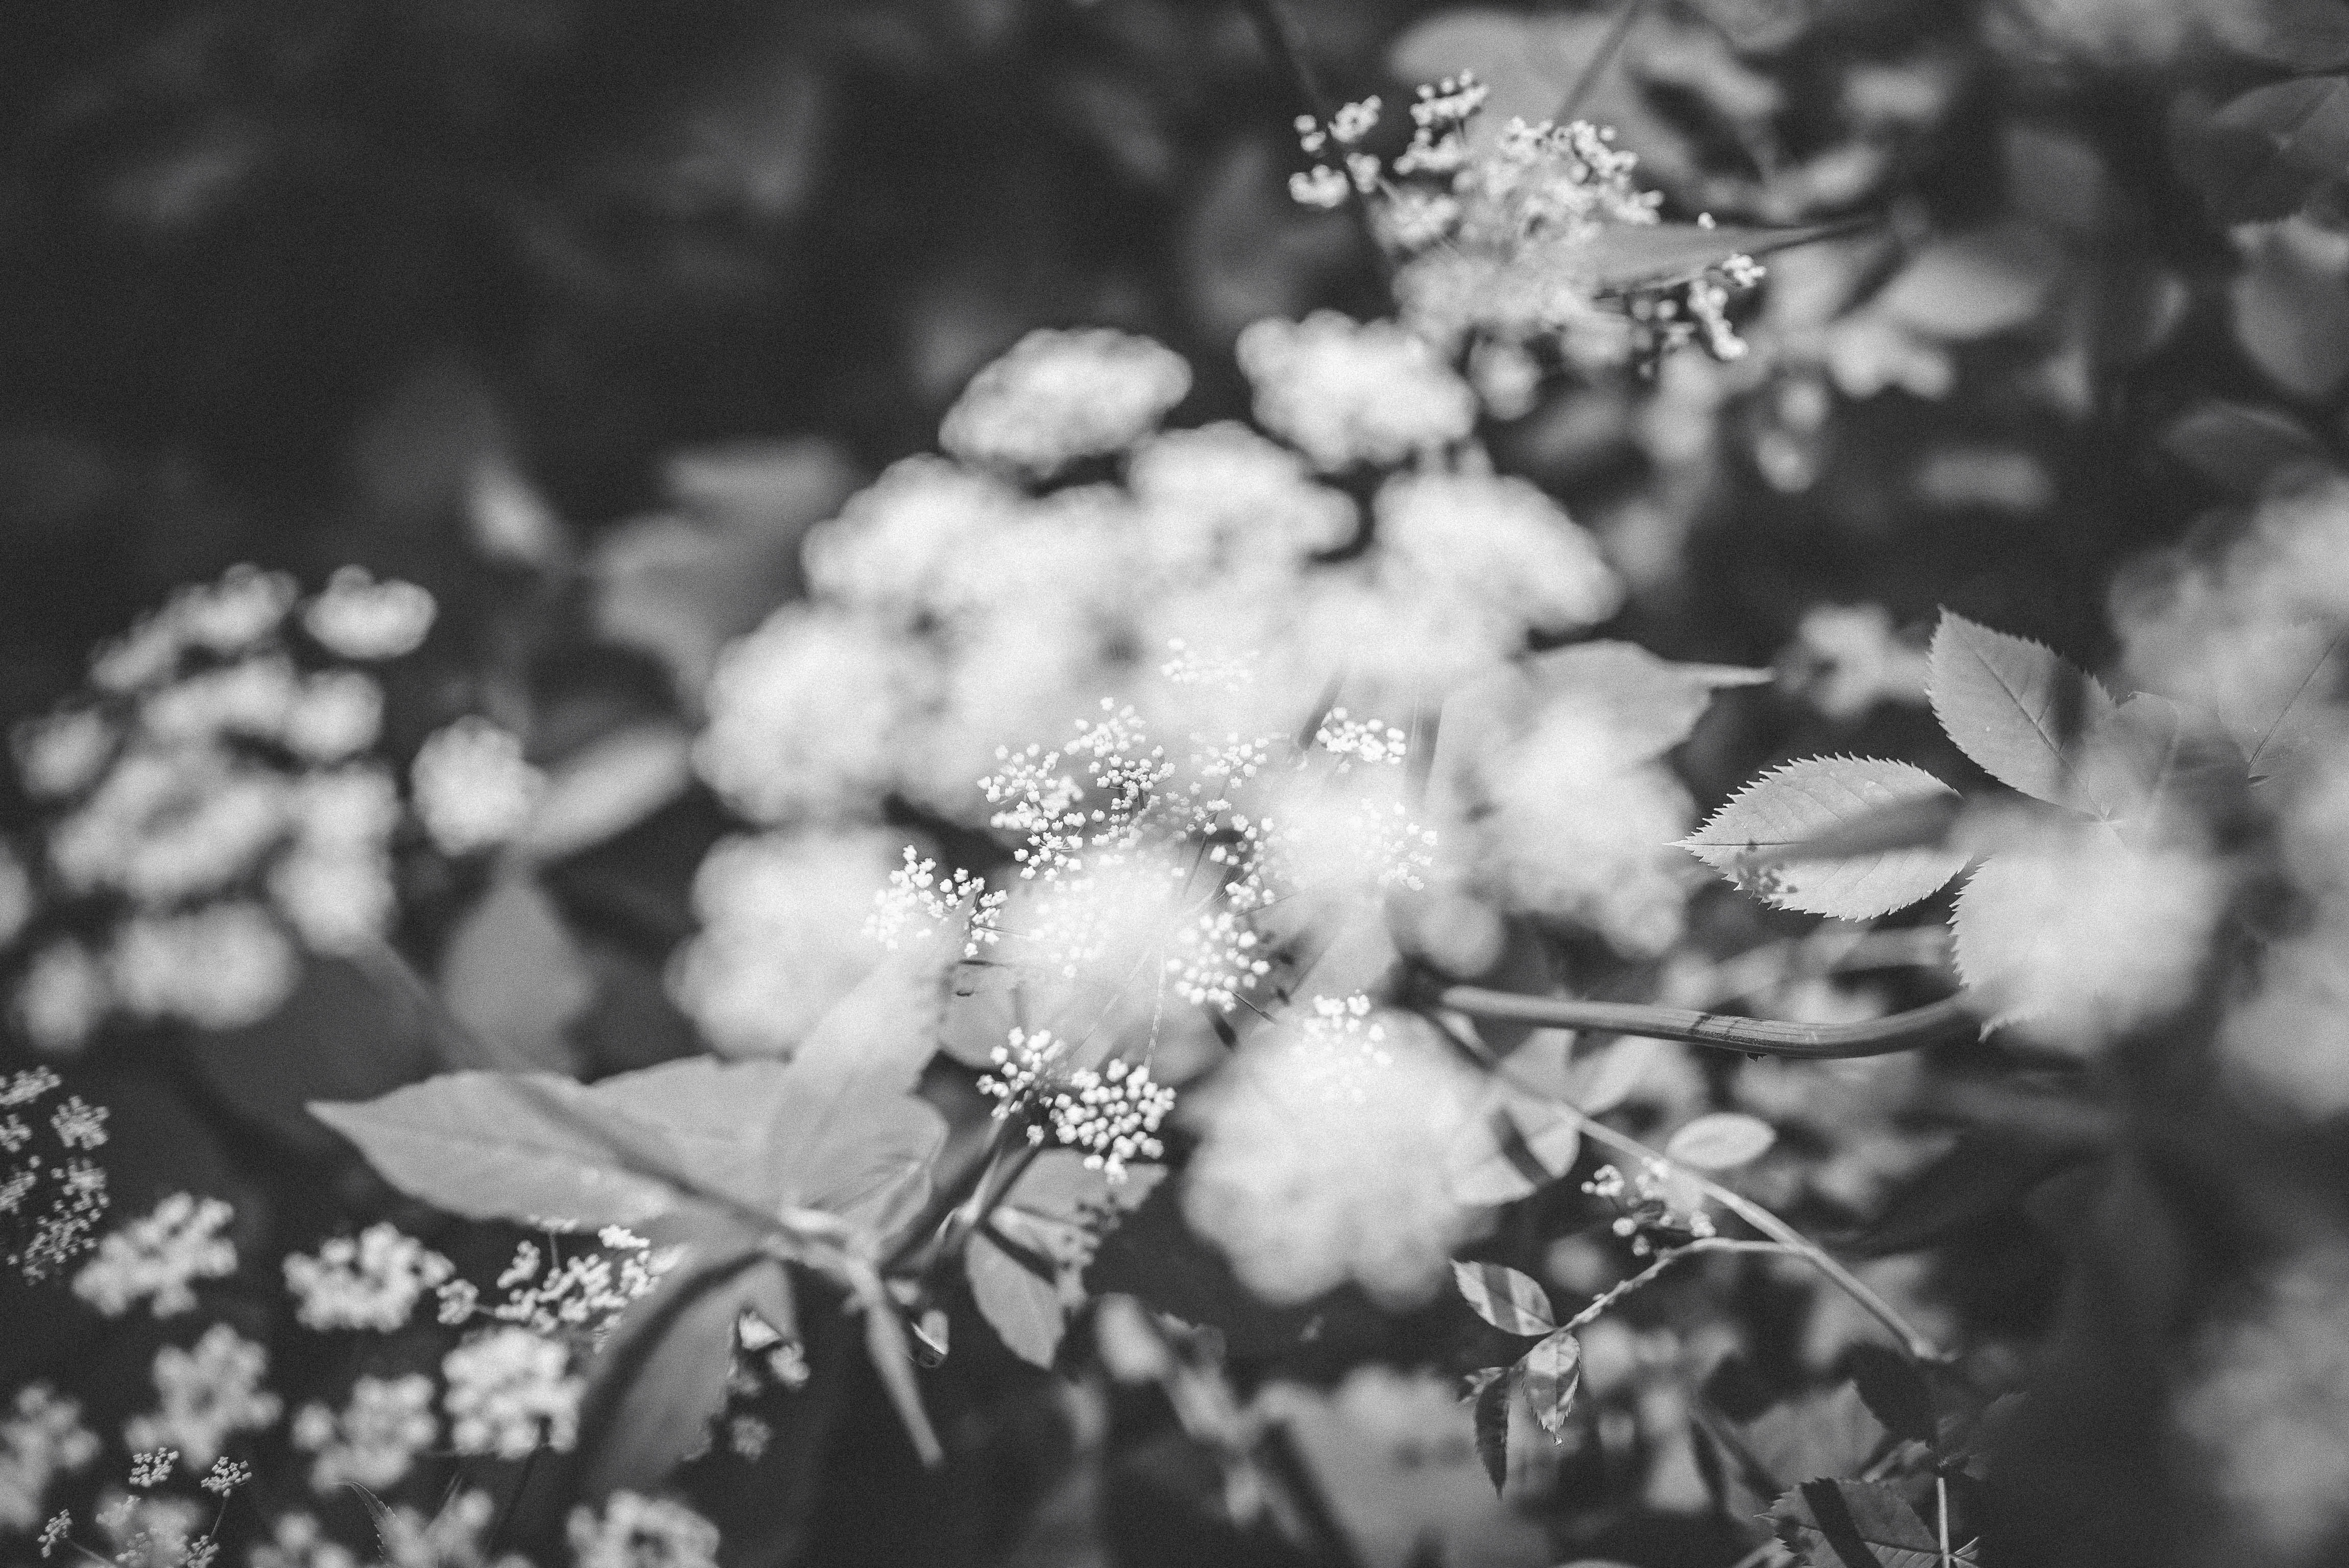 Black and white close up of blurry plant with leaves and flowers